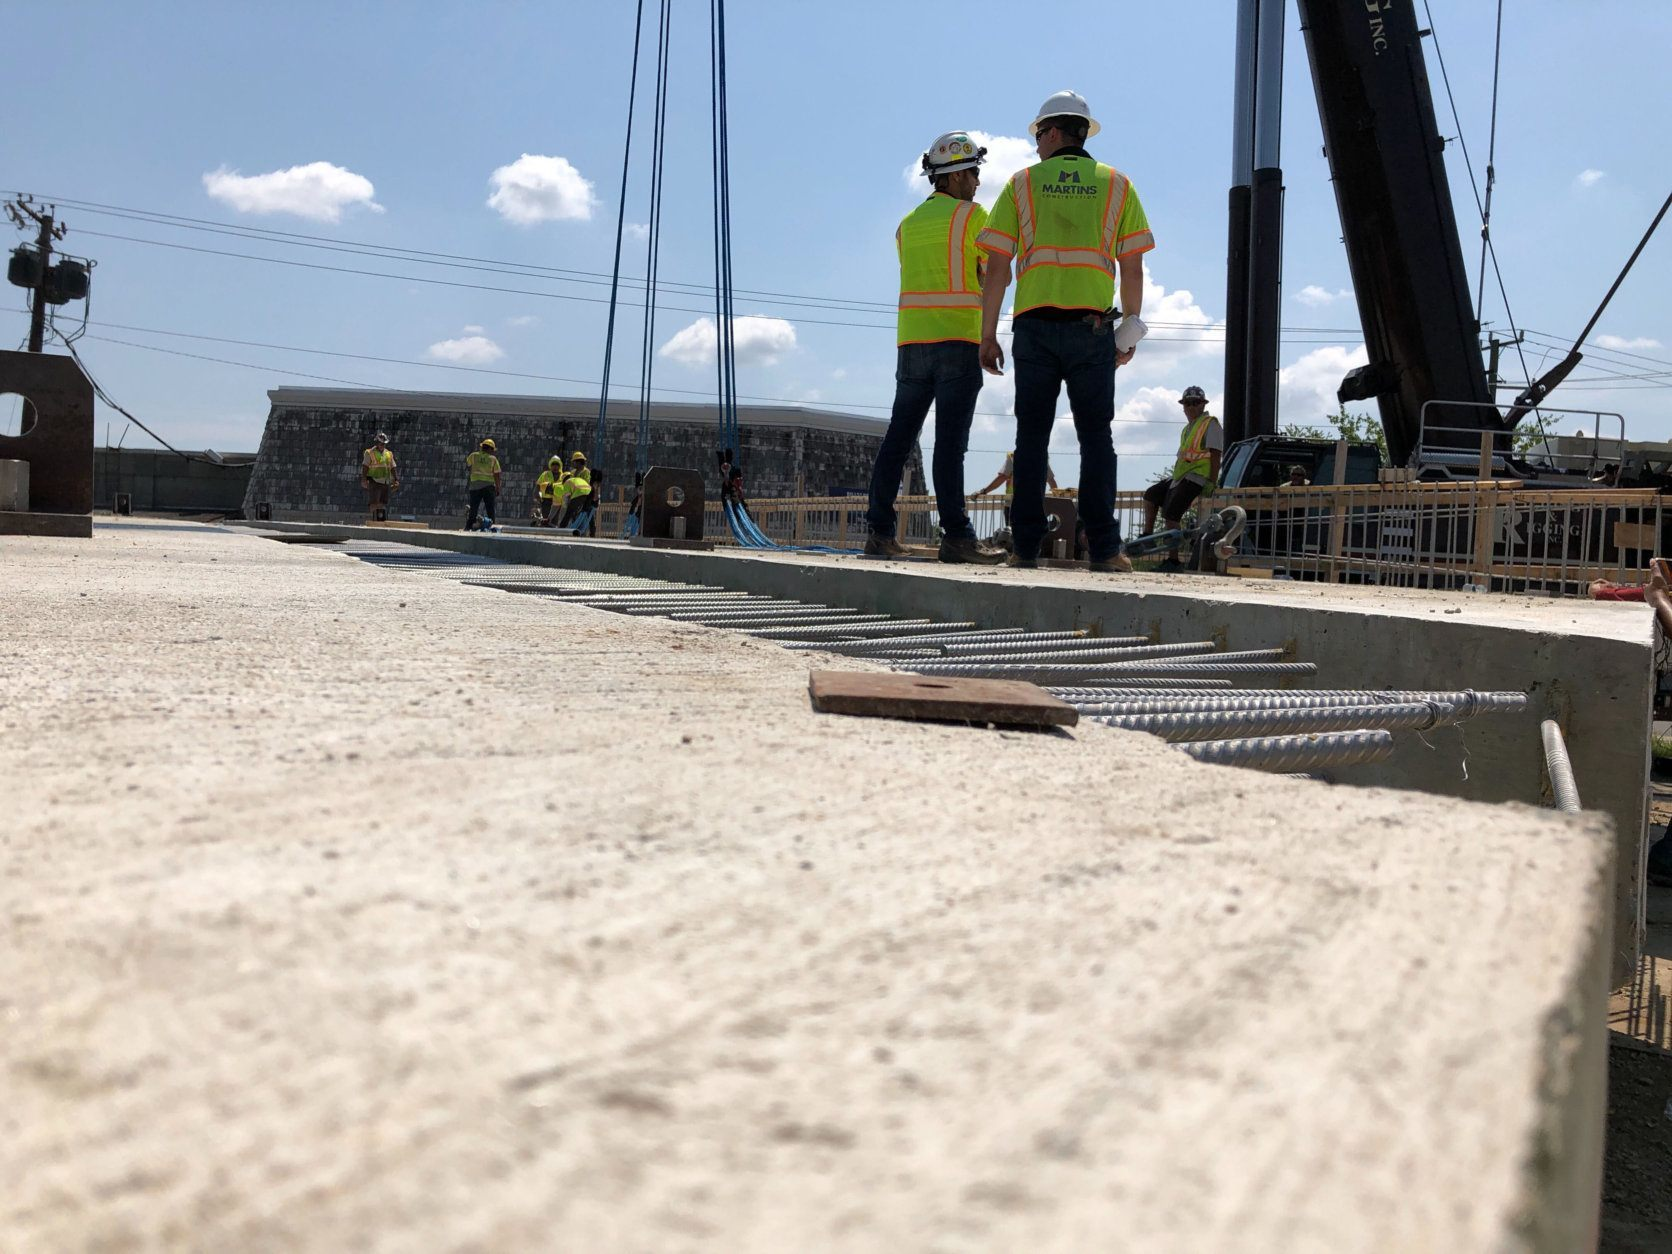 <p>Once the closure is put into effect, crews will begin demolition of an old one-way, two-lane bridge.</p> <p>The new 87-foot overpass will be carefully hoisted into position above Route 50 throughout the weekend.</p> <p>Virginia&#8217;s Department of Transportation said the decision to build the Wilson Boulevard bridge off-site and move it into place en masse was based on time savings and potential impacts on traffic.</p> <p>&#8220;Our traffic engineering group looked at the traffic volumes in Seven Corners and determined that we cannot take this bridge out of service for an extended period of time,&#8221; said VDOT spokesperson Ellen Kamilakis.</p>